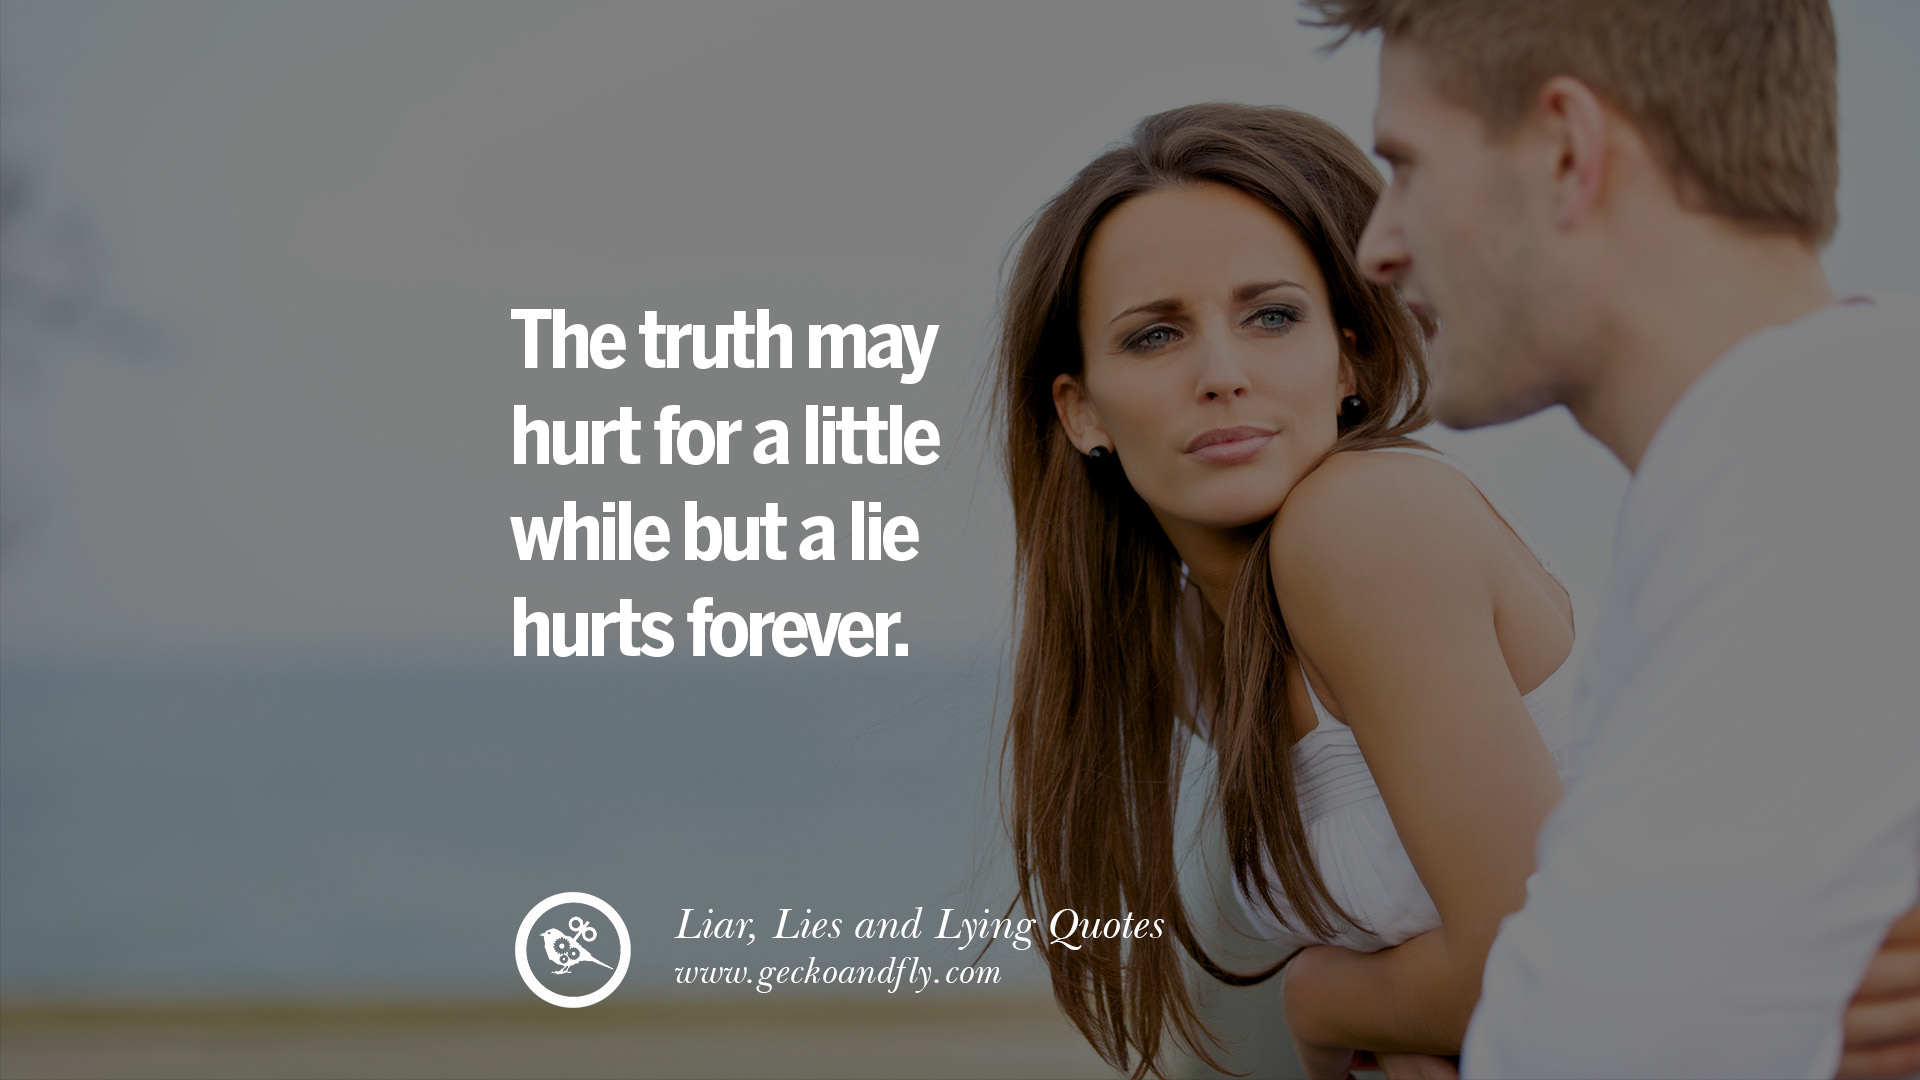 60 Quotes About Liar, Lies and Lying Boyfriend In A ...